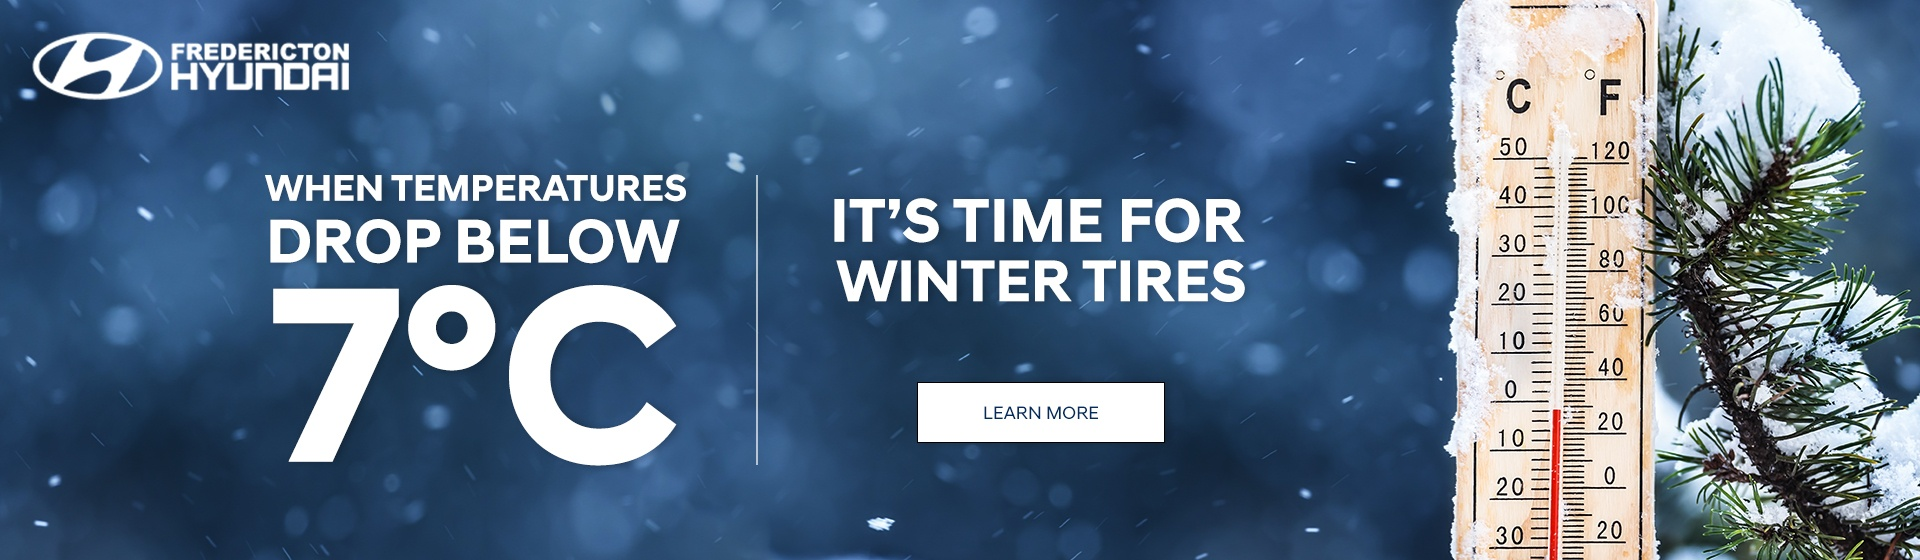 It's time for winter tires